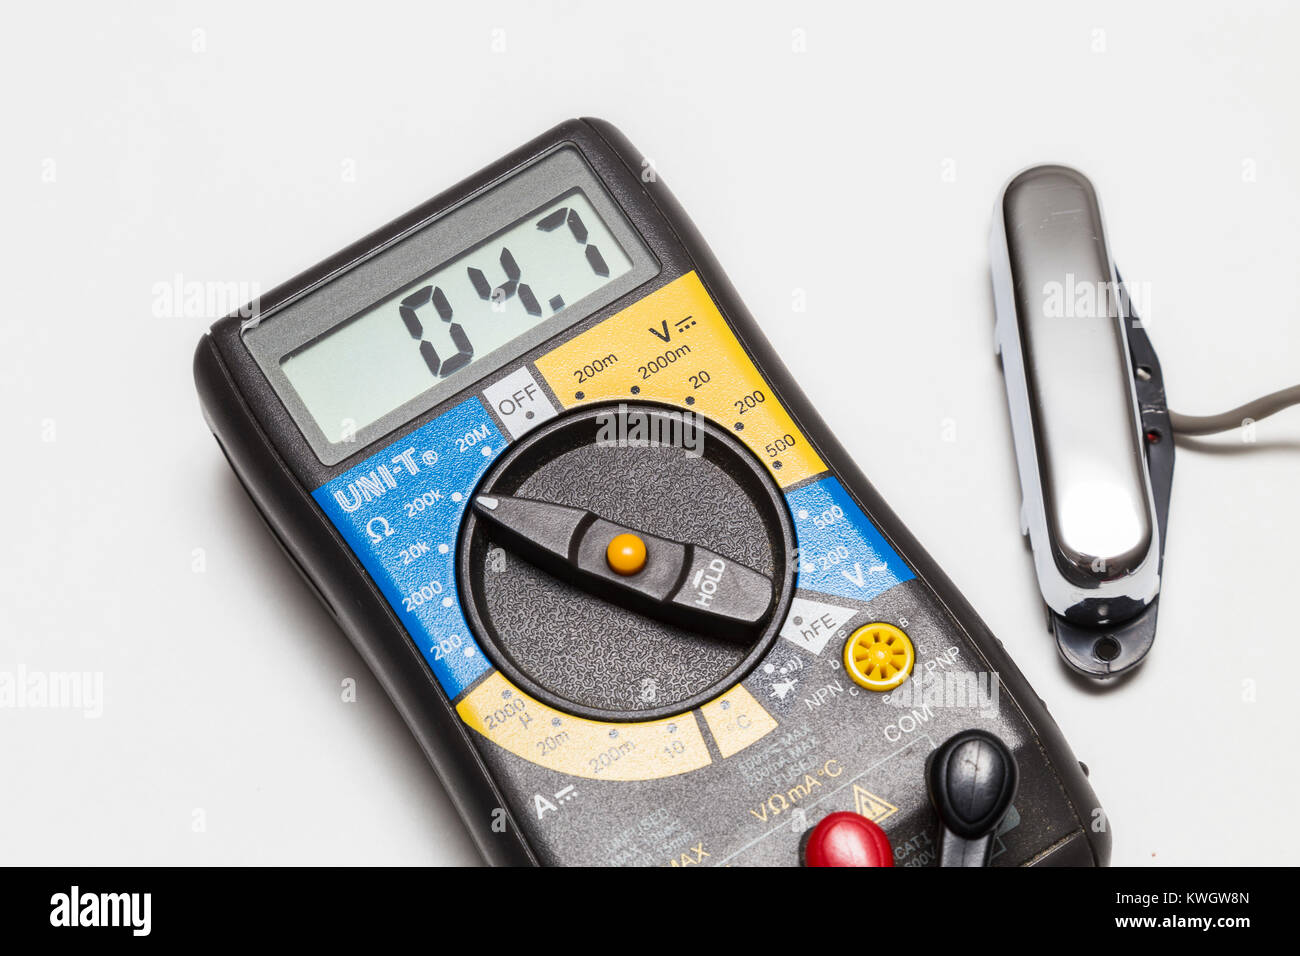 Testing the DC resistance on a telecaster type guitar neck 'lipstick' pickup using a multimeter. - Stock Image